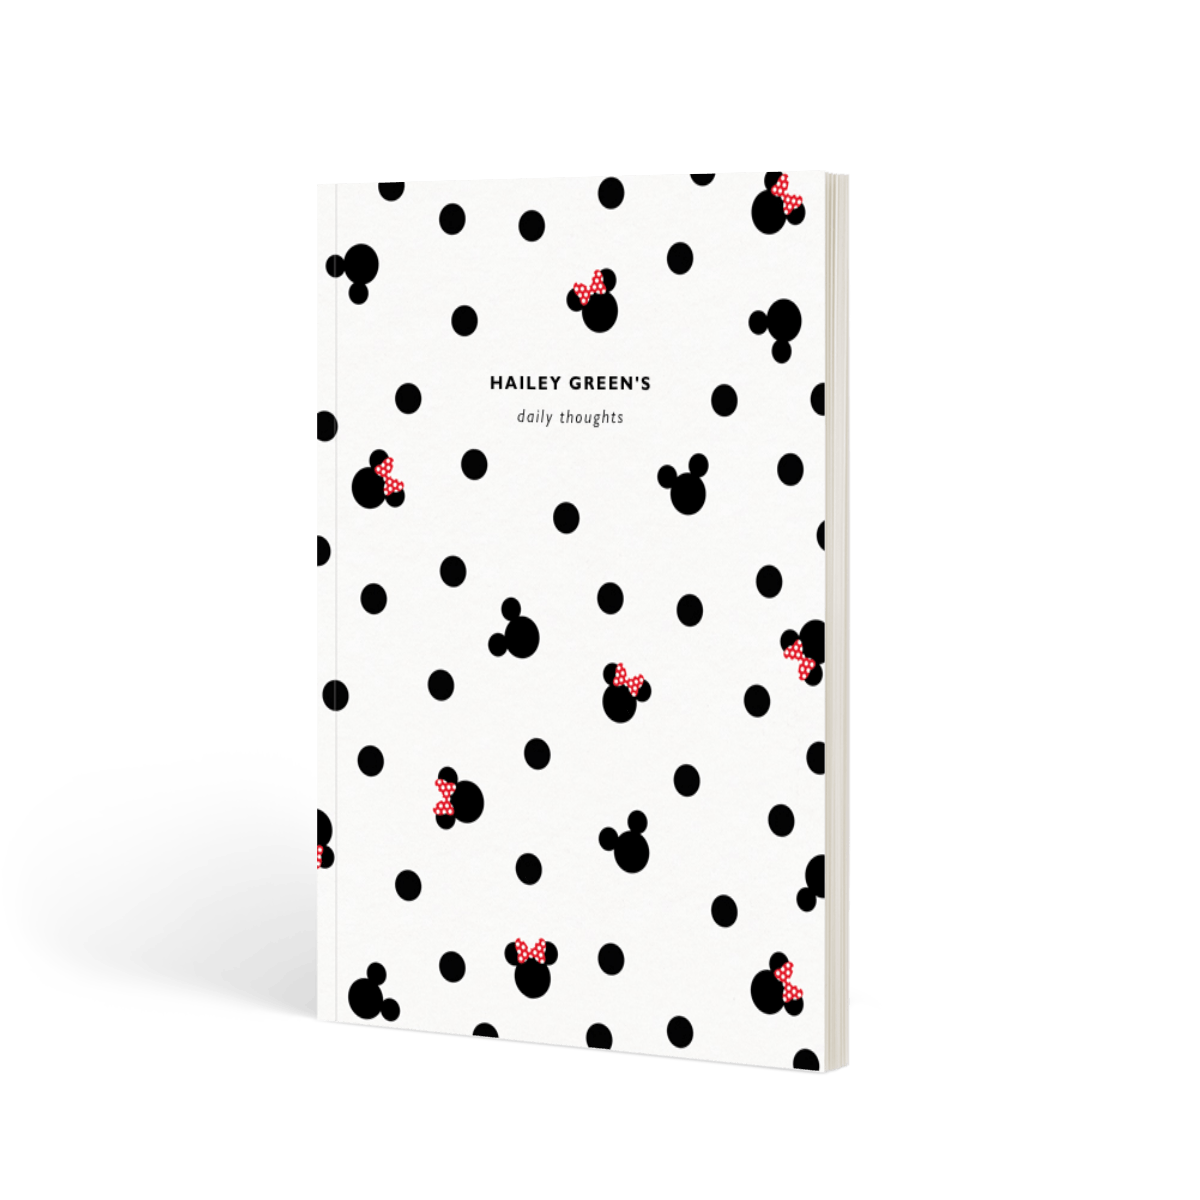 Https%3a%2f%2fwww.papier.com%2fproduct image%2f55816%2f6%2fmickey minnie mouse 13405 front 1570128849.png?ixlib=rb 1.1